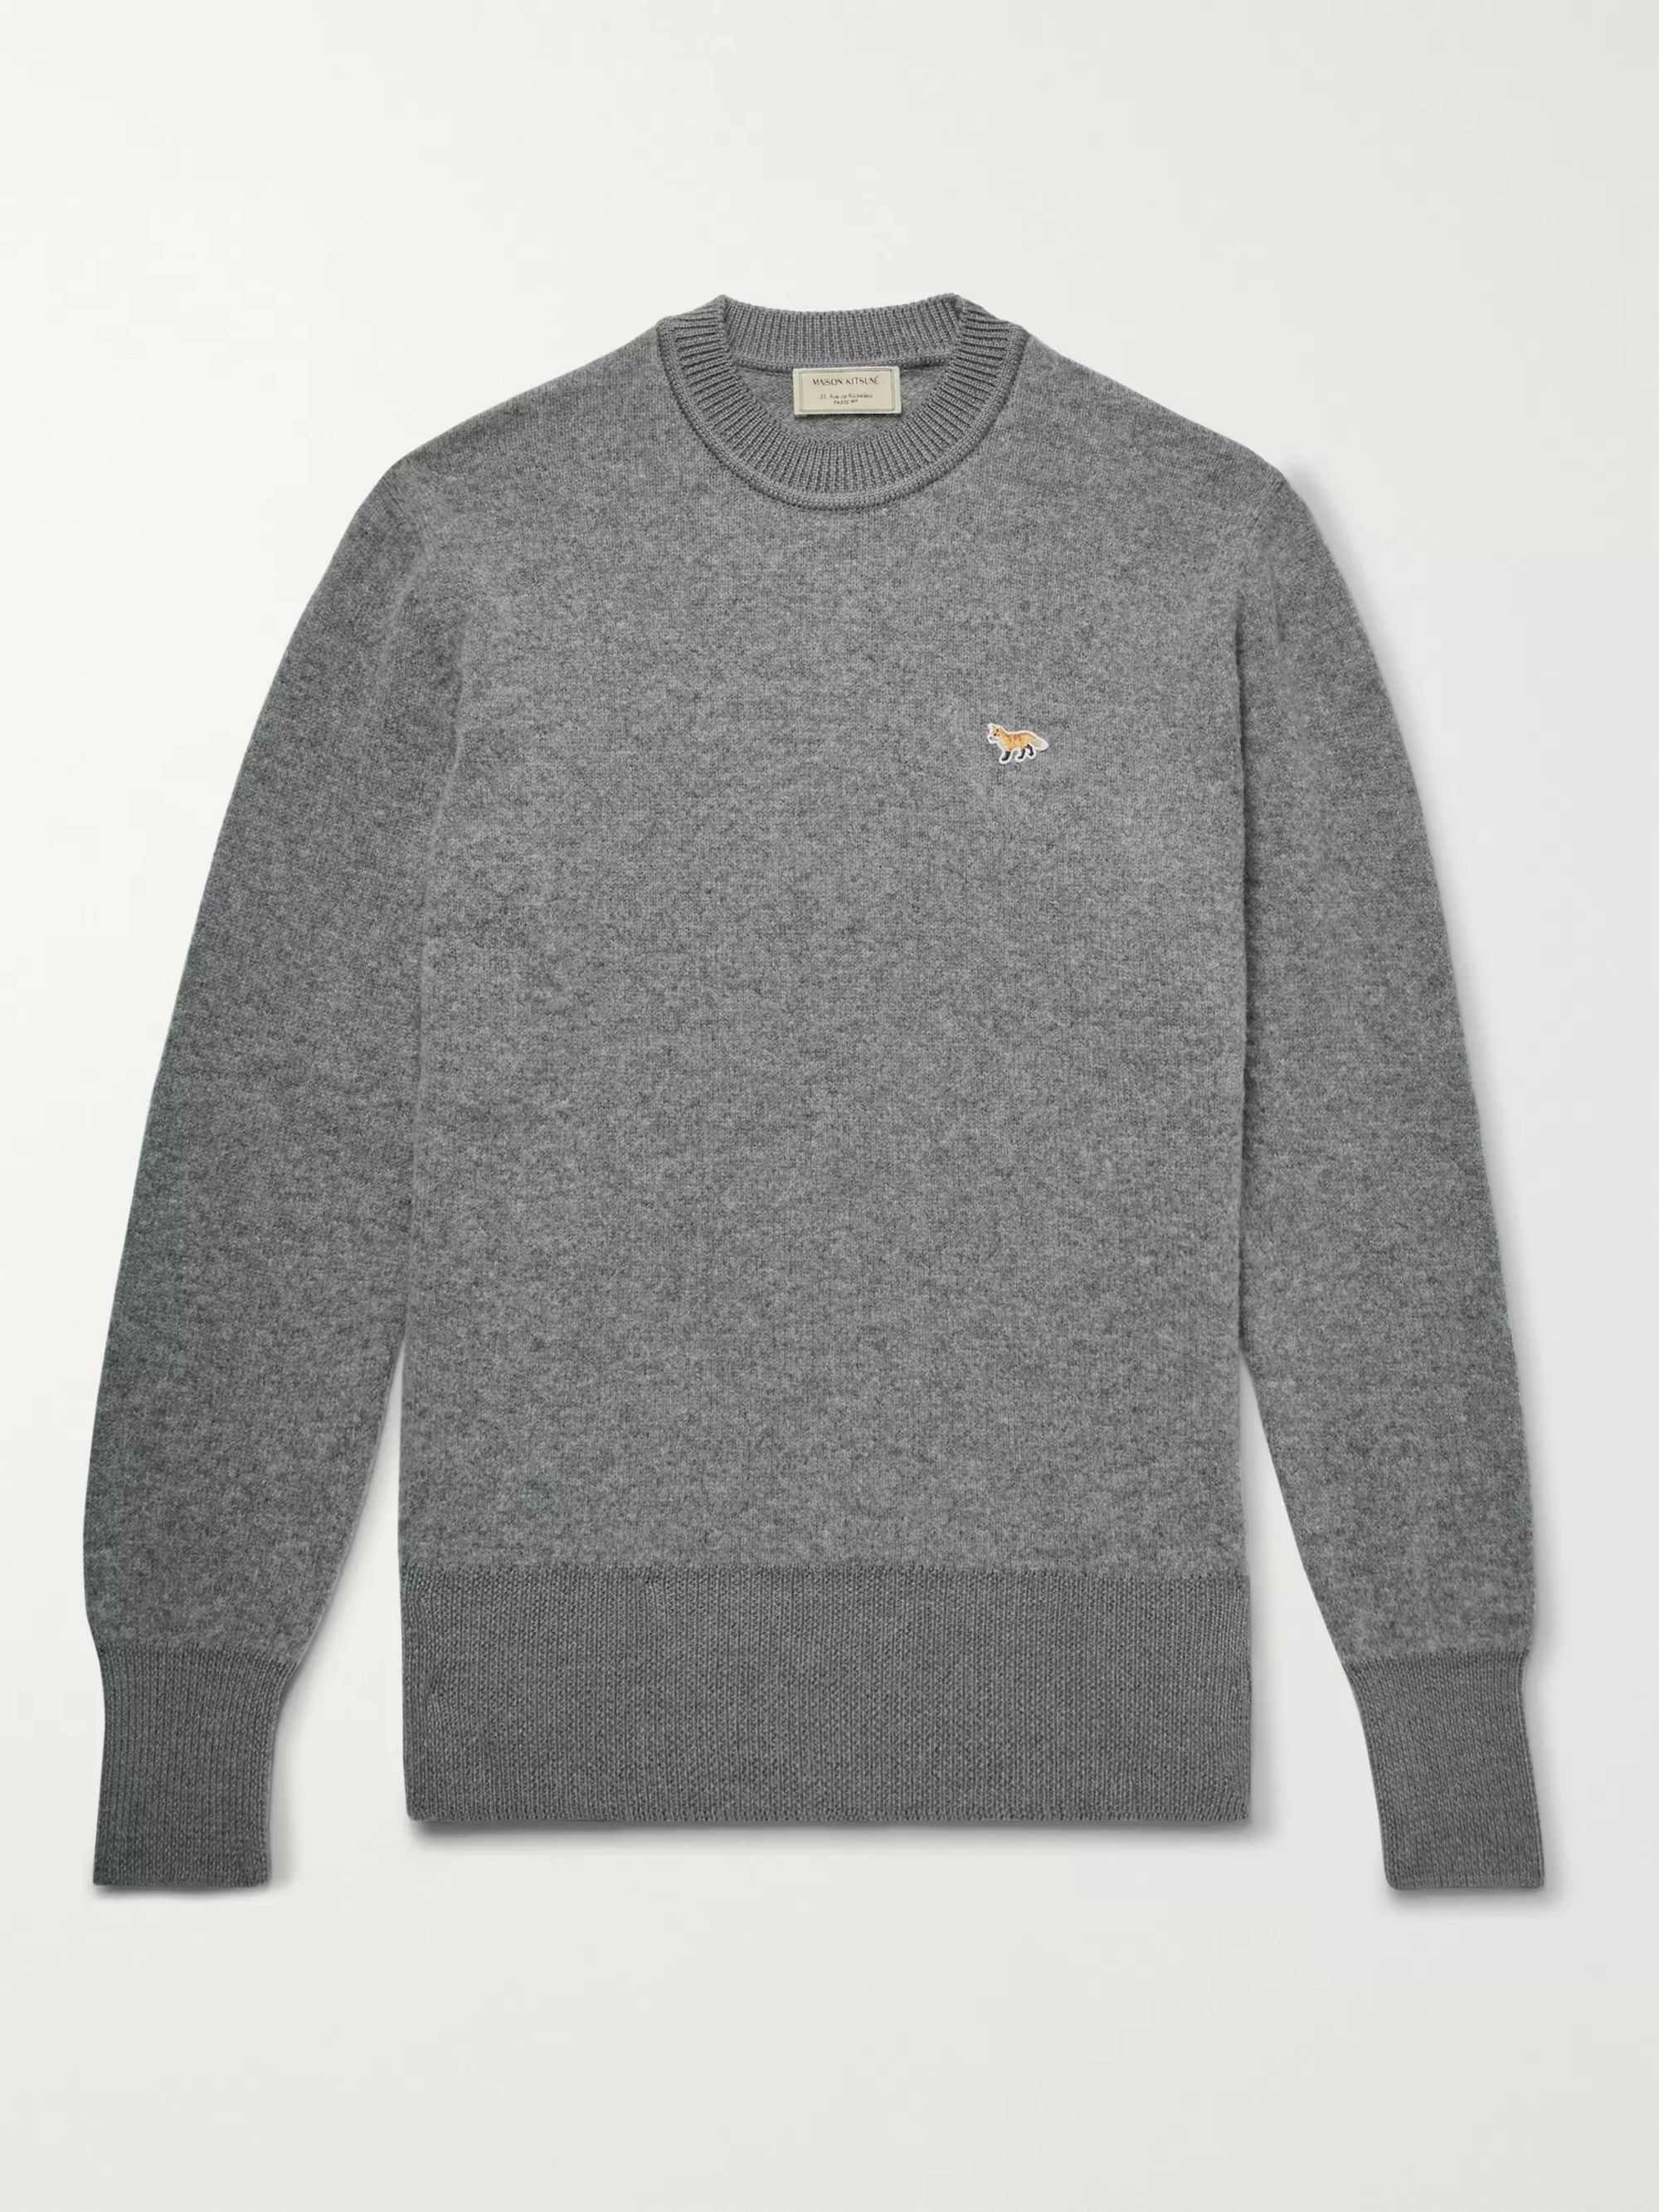 Maison Kitsuné Two-Tone Wool Sweater